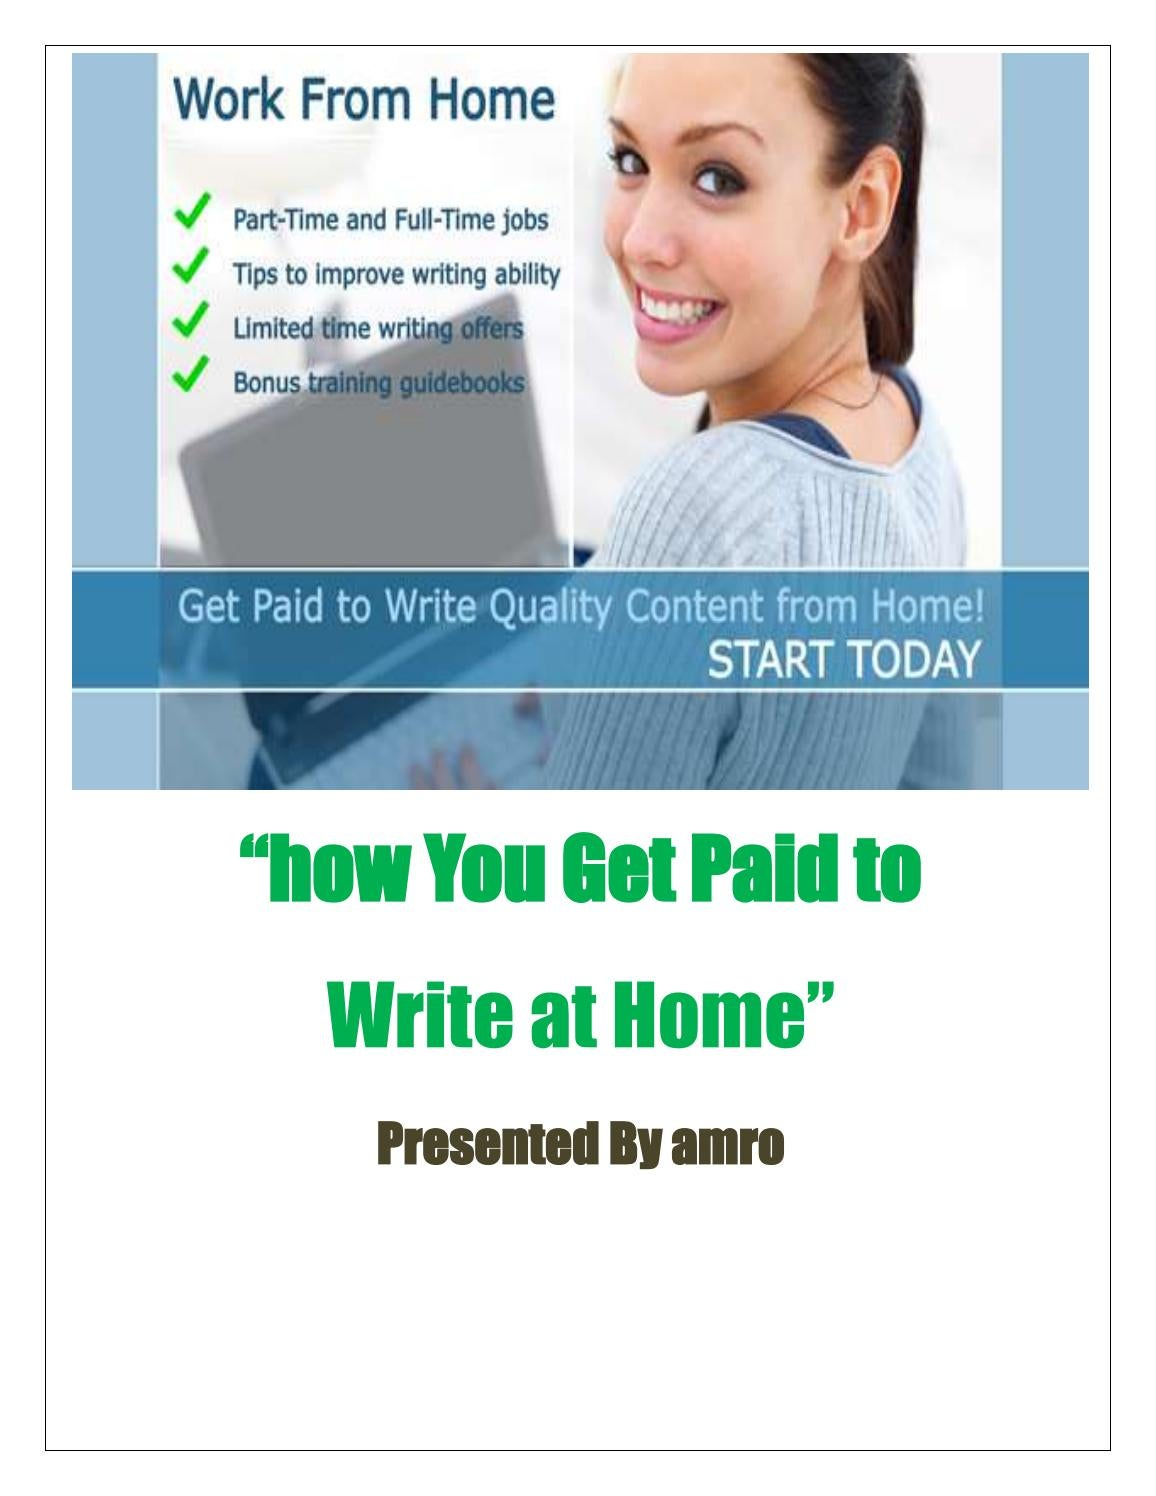 online technical writing jobs Technical writers advance and improve both internal and external communications by writing for websites, emails, proposals, technical instructions, and more this technical writing course is the best way to get started learning everything you need to know about this exciting and diverse field.